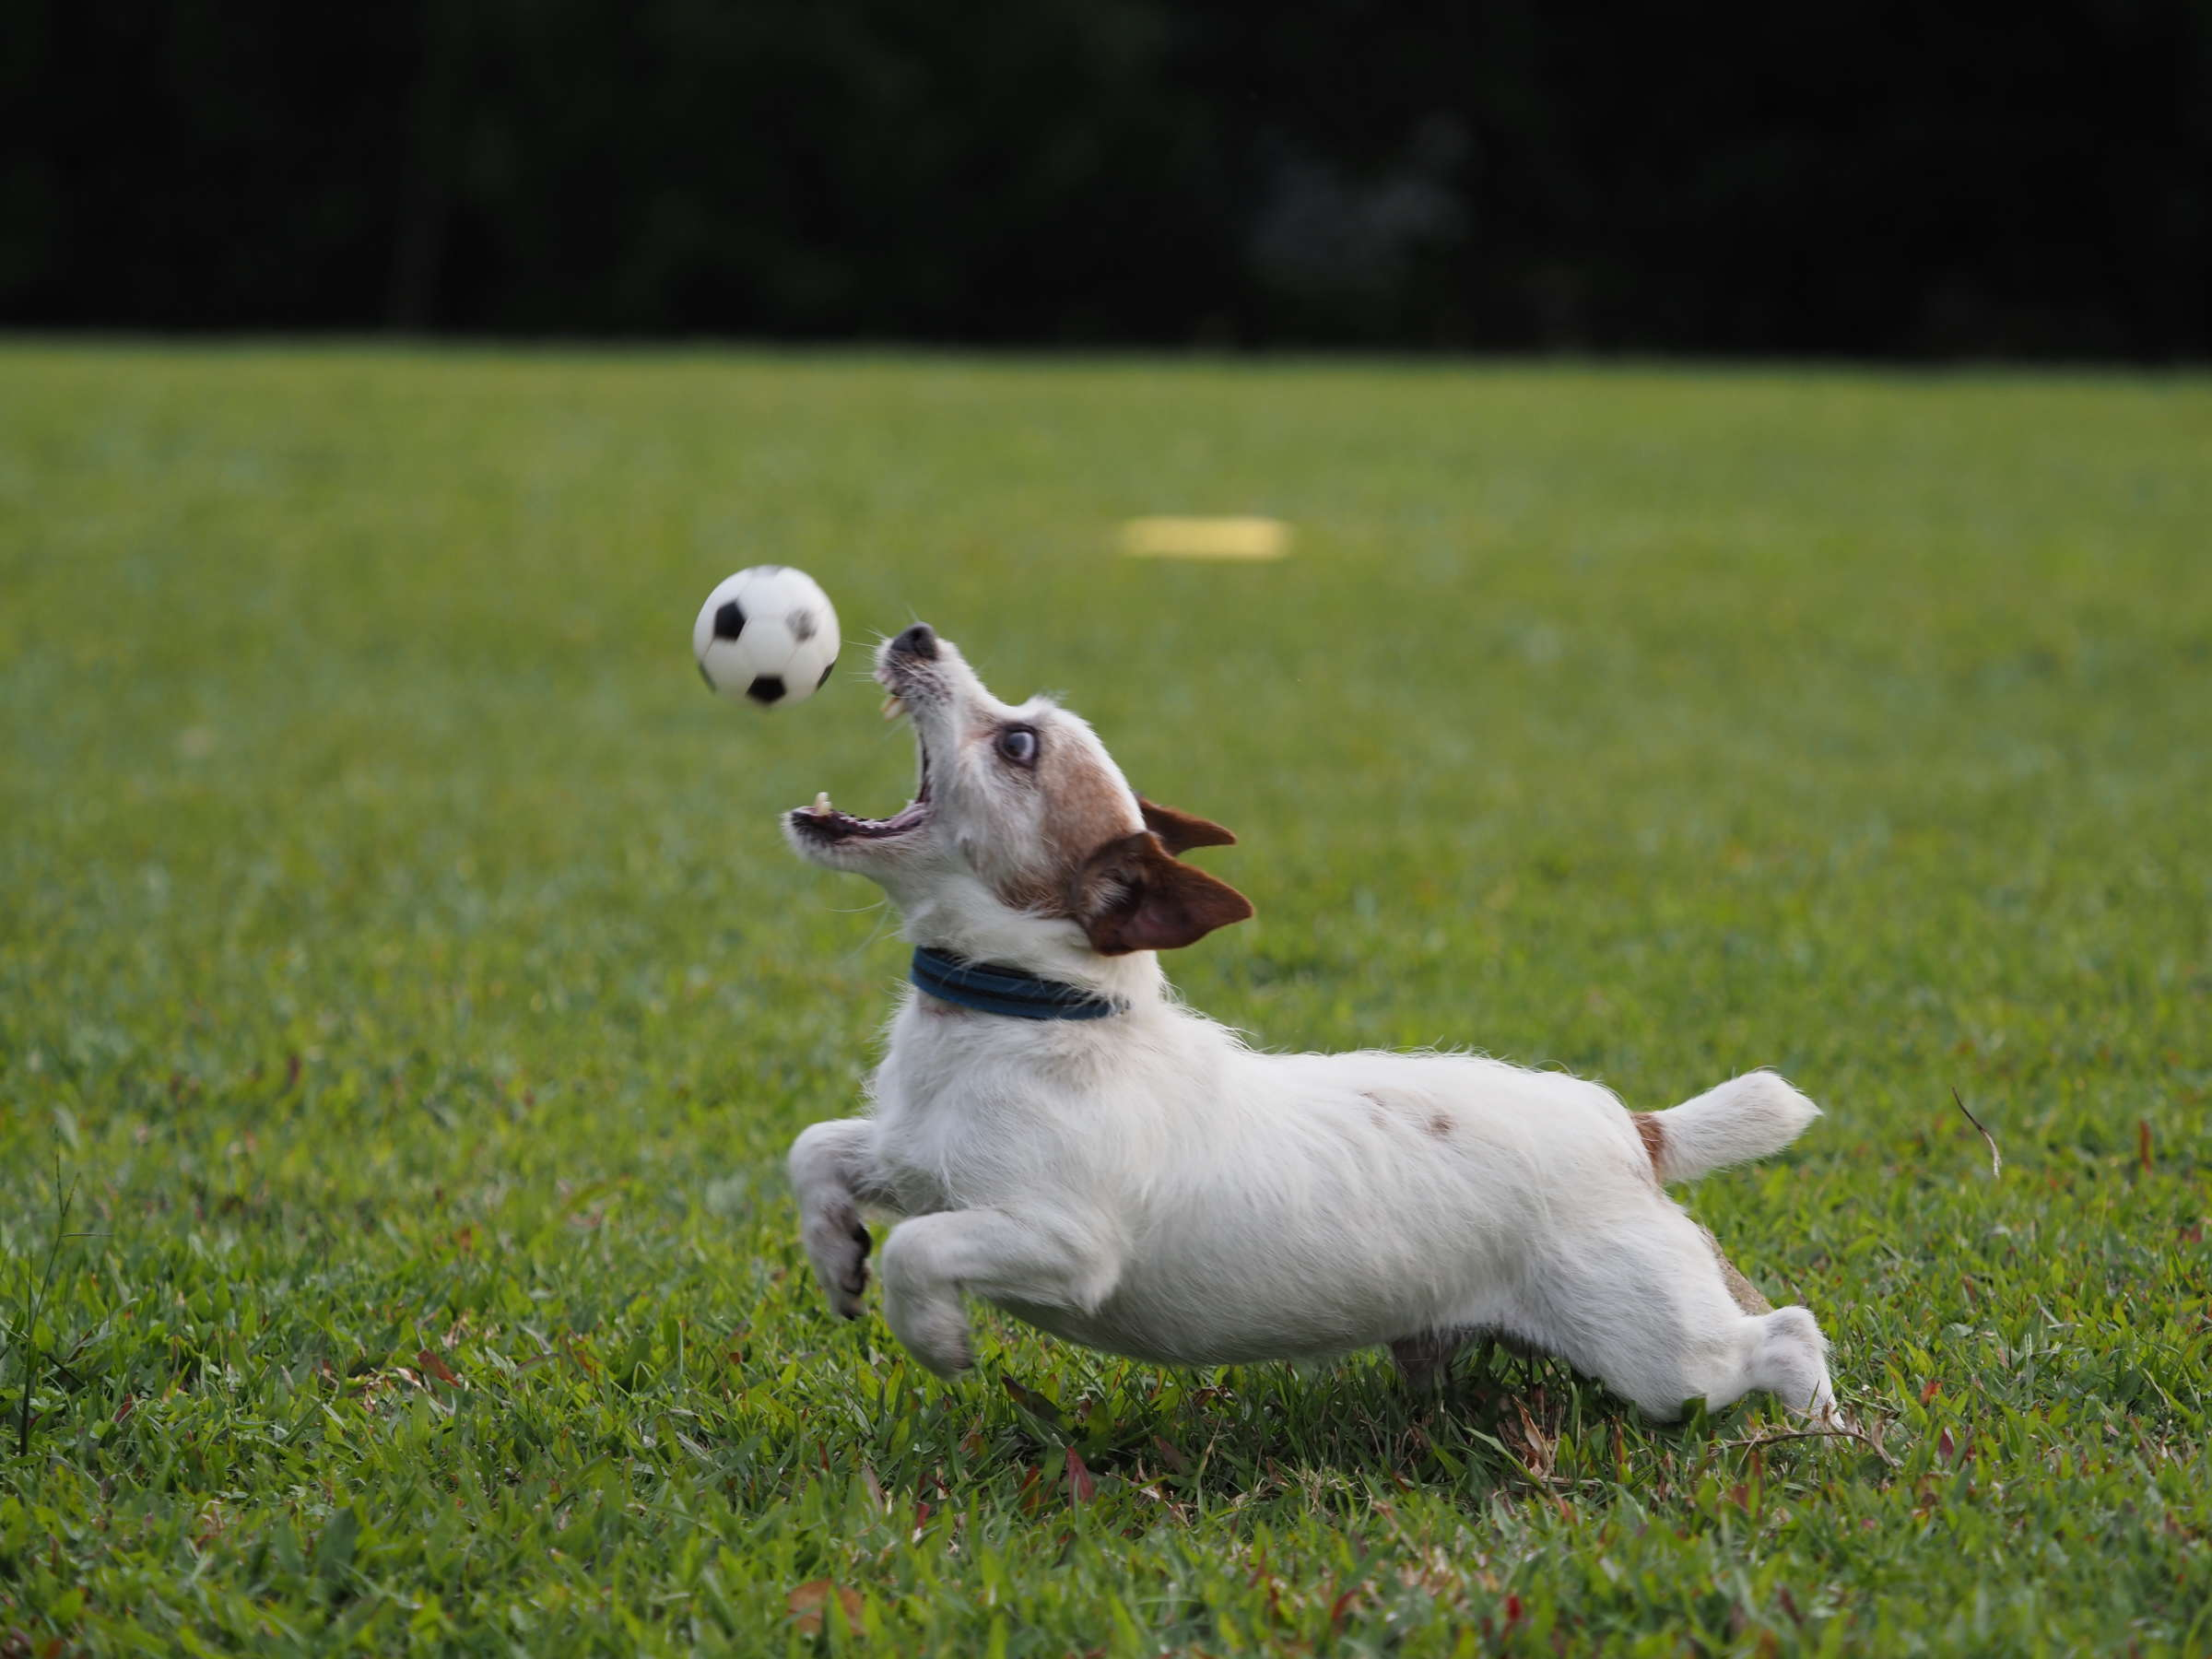 Dog breed, Jack Russell Terrier, Companion dog, Terrier, Gun dog, Breed, Lawn, Dog, grass, dog breed, grass, jack russell terrier, dog like mammal, companion dog, meadow, lawn, sporting group